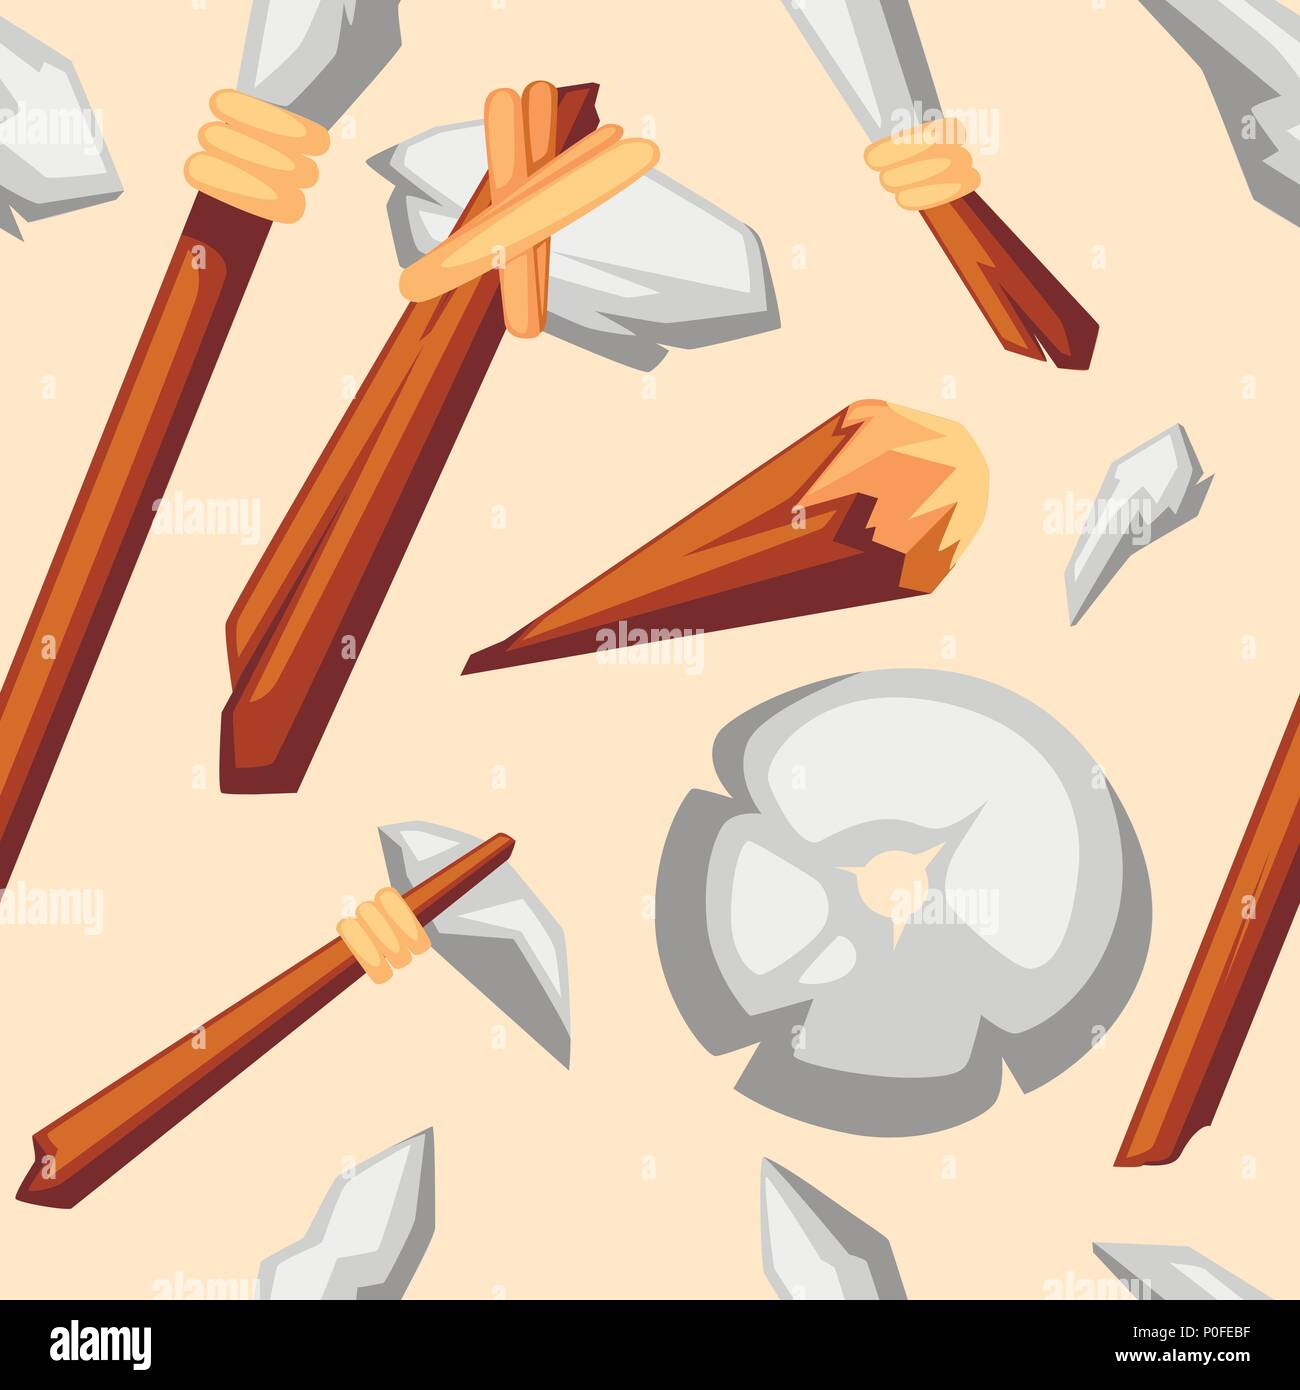 Seamless pattern. Stone tools collection. Stone age primitive work tools axe, hammer, club, spear and knife. Stone wheel. Flat style vector illustrati - Stock Image